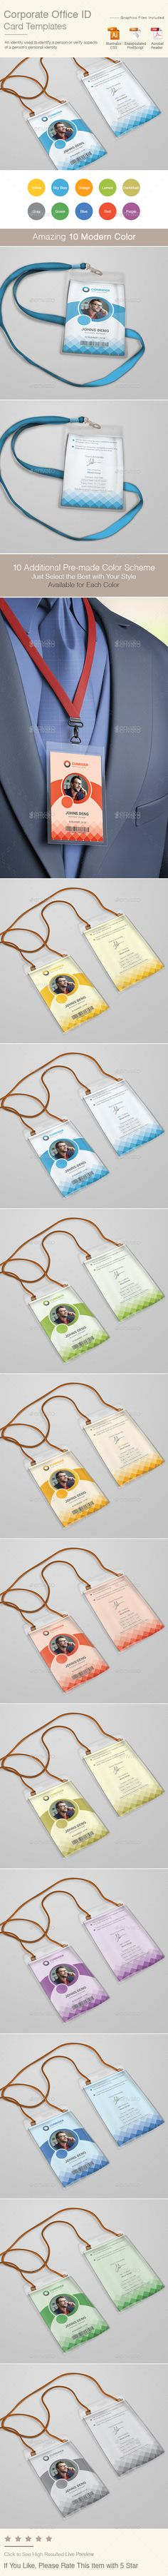 Corporate ID Card — Vector EPS #business #doctors medical • Available here → https://graphicriver.net/item/corporate-id-card/15716108?ref=pxcr